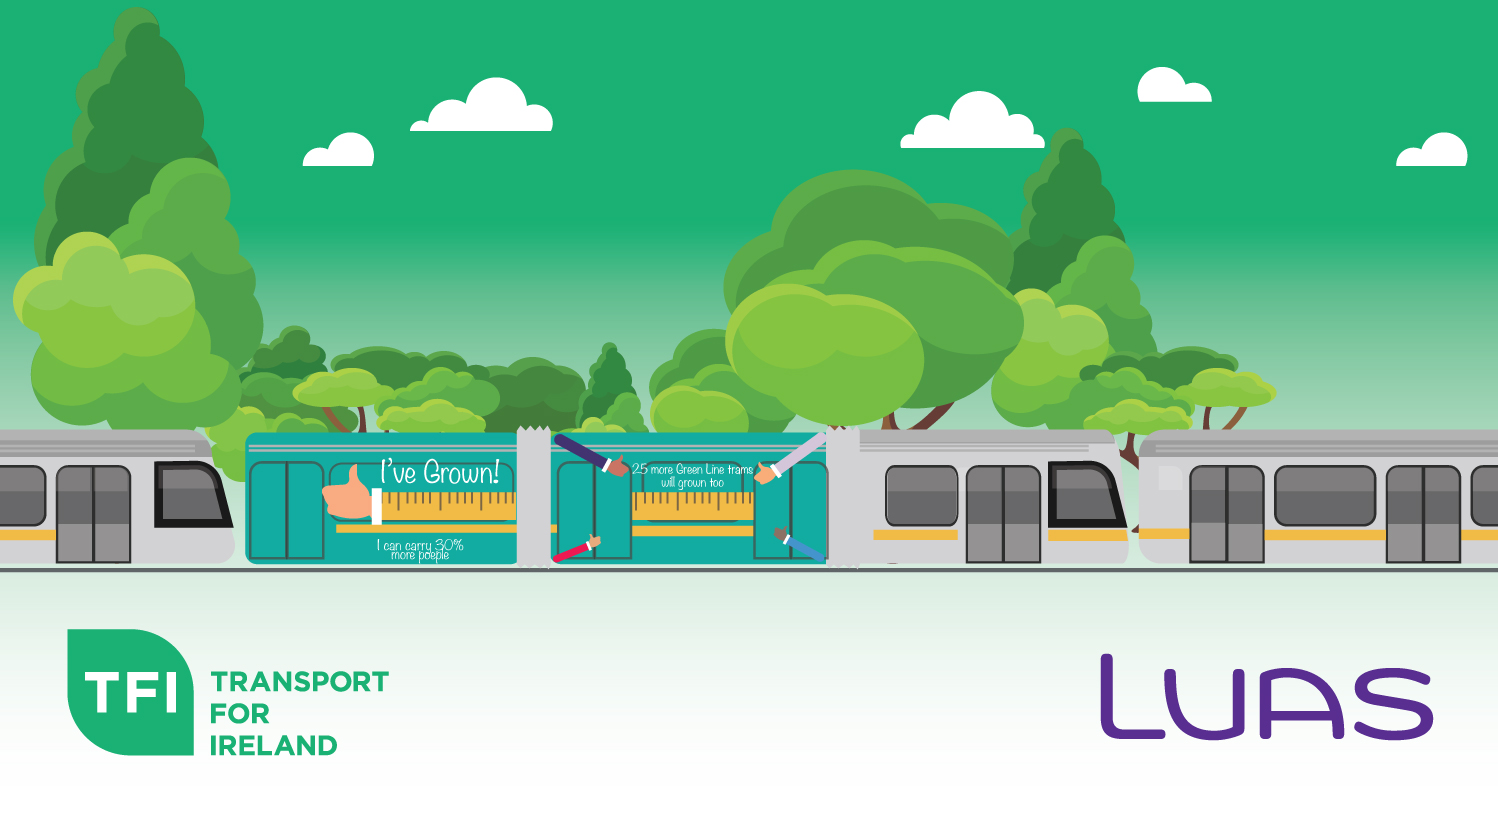 Image of new extended Luas tram, with logos and trees in the background.